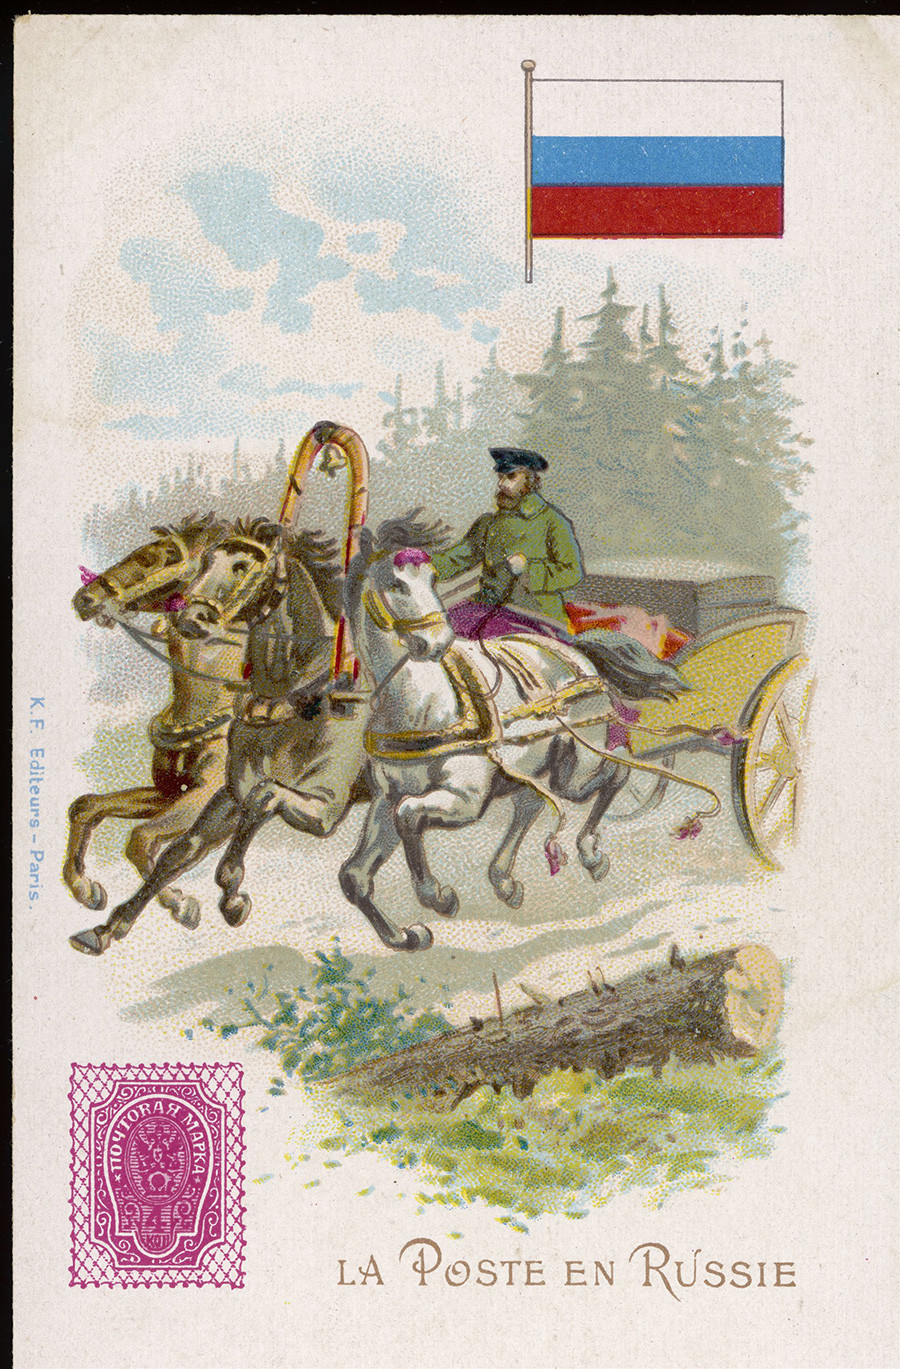 With three horses to draw his troika, the Russian postman can make his round in speed and comfort, circa 1900.